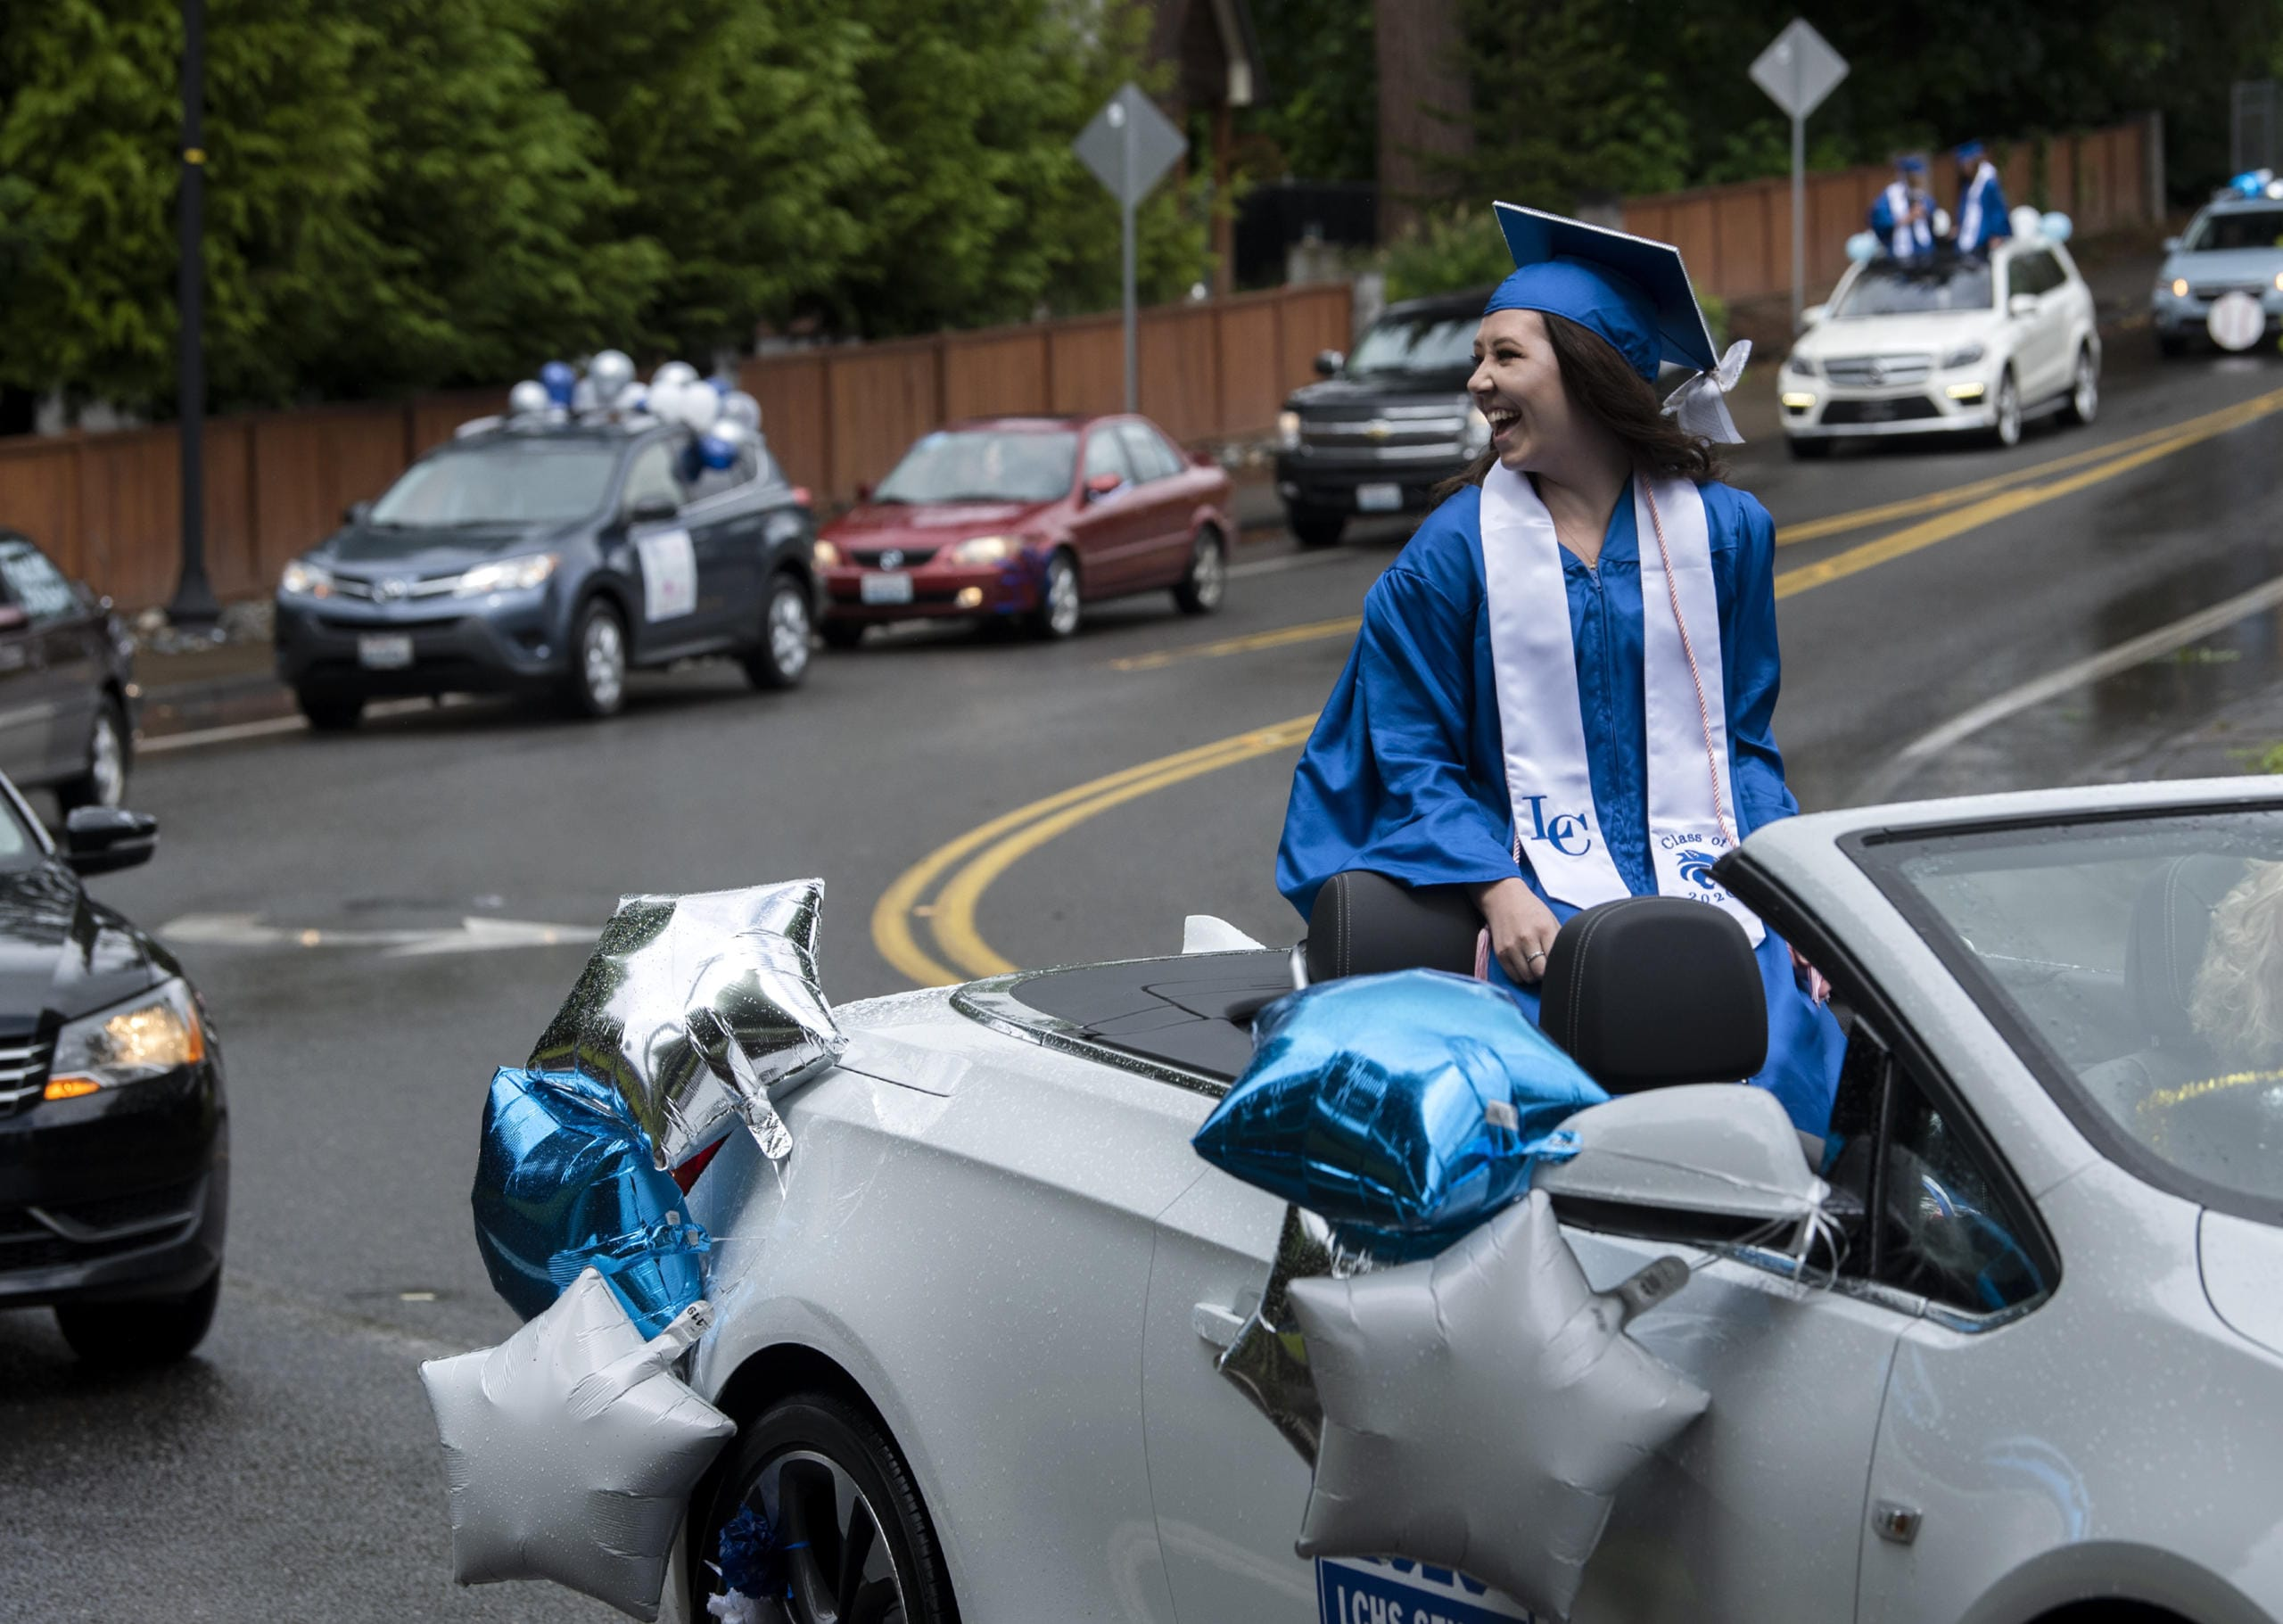 LEAD OPTION: La Center High School graduate Dayna Hines rides through the car parade graduation celebration in La Center, Wash., on June 13, 2020. (Alisha Jucevic/The Columbian)